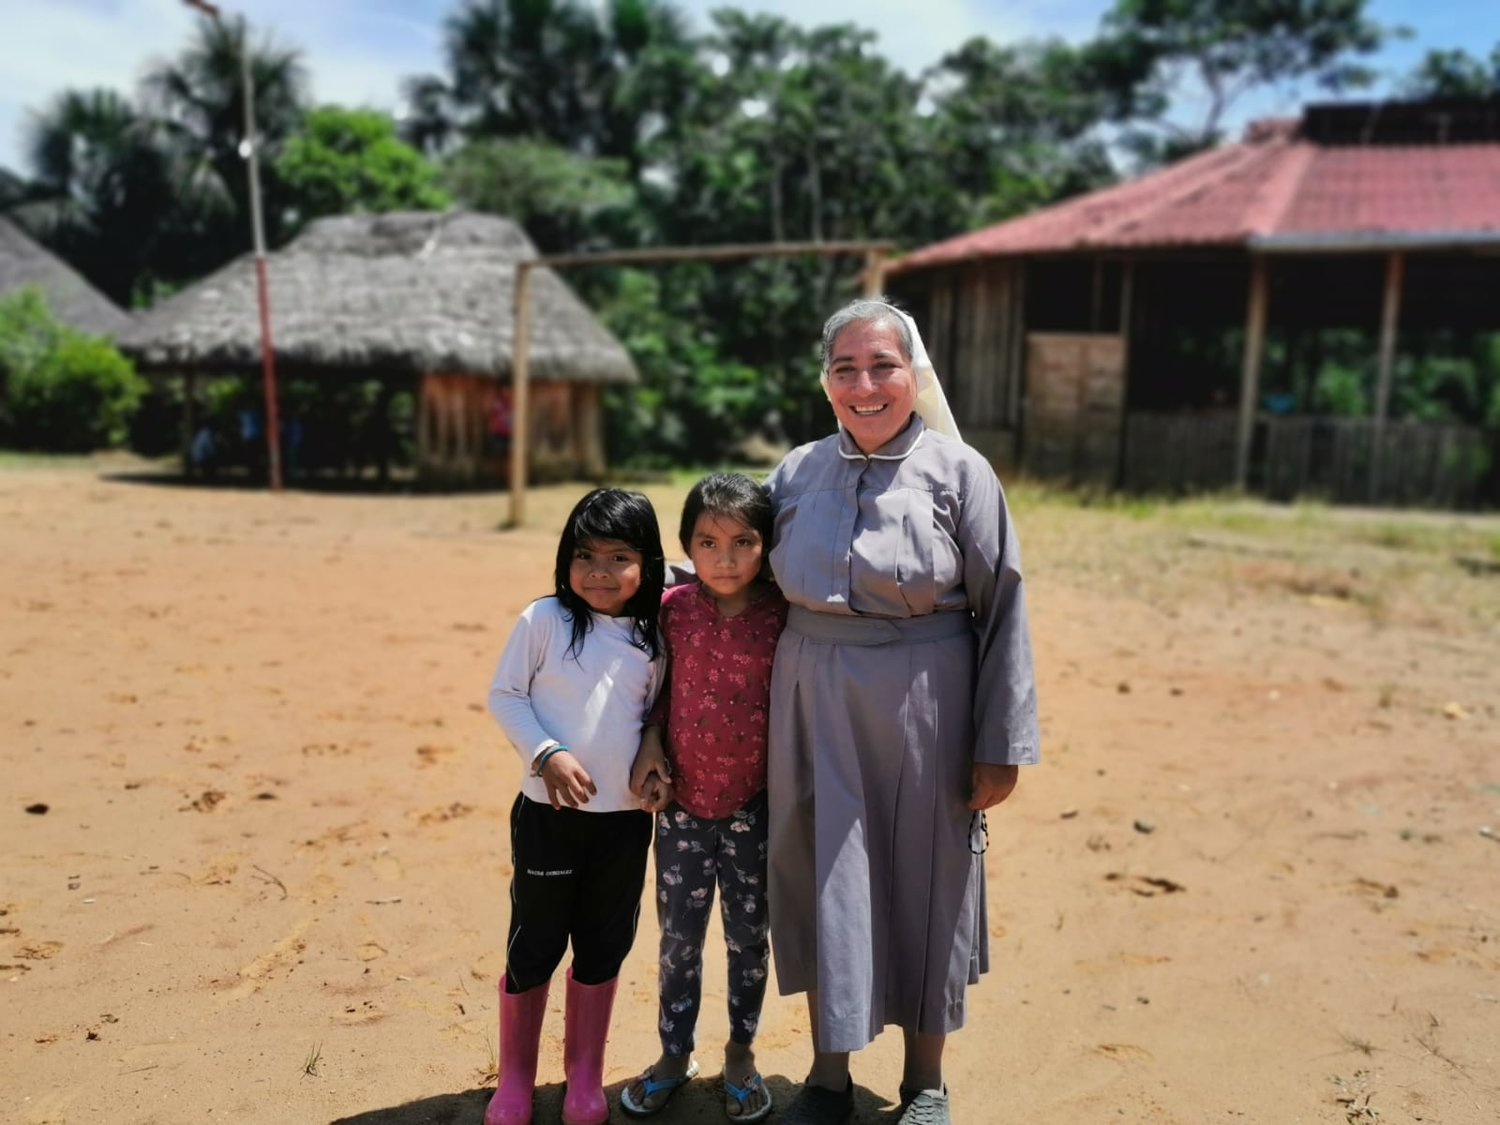 Sister Rosa Elena Pico, a member of the Missionaries of Mary Co-Redemptrix, poses for a photo with children from the indigenous community of Sarayaku, Ecuador, Sept. 18, 2019. Sister Pico has worked and lived with the community since 2017 and occasionally leads the liturgy of the word in the absence of a priest.